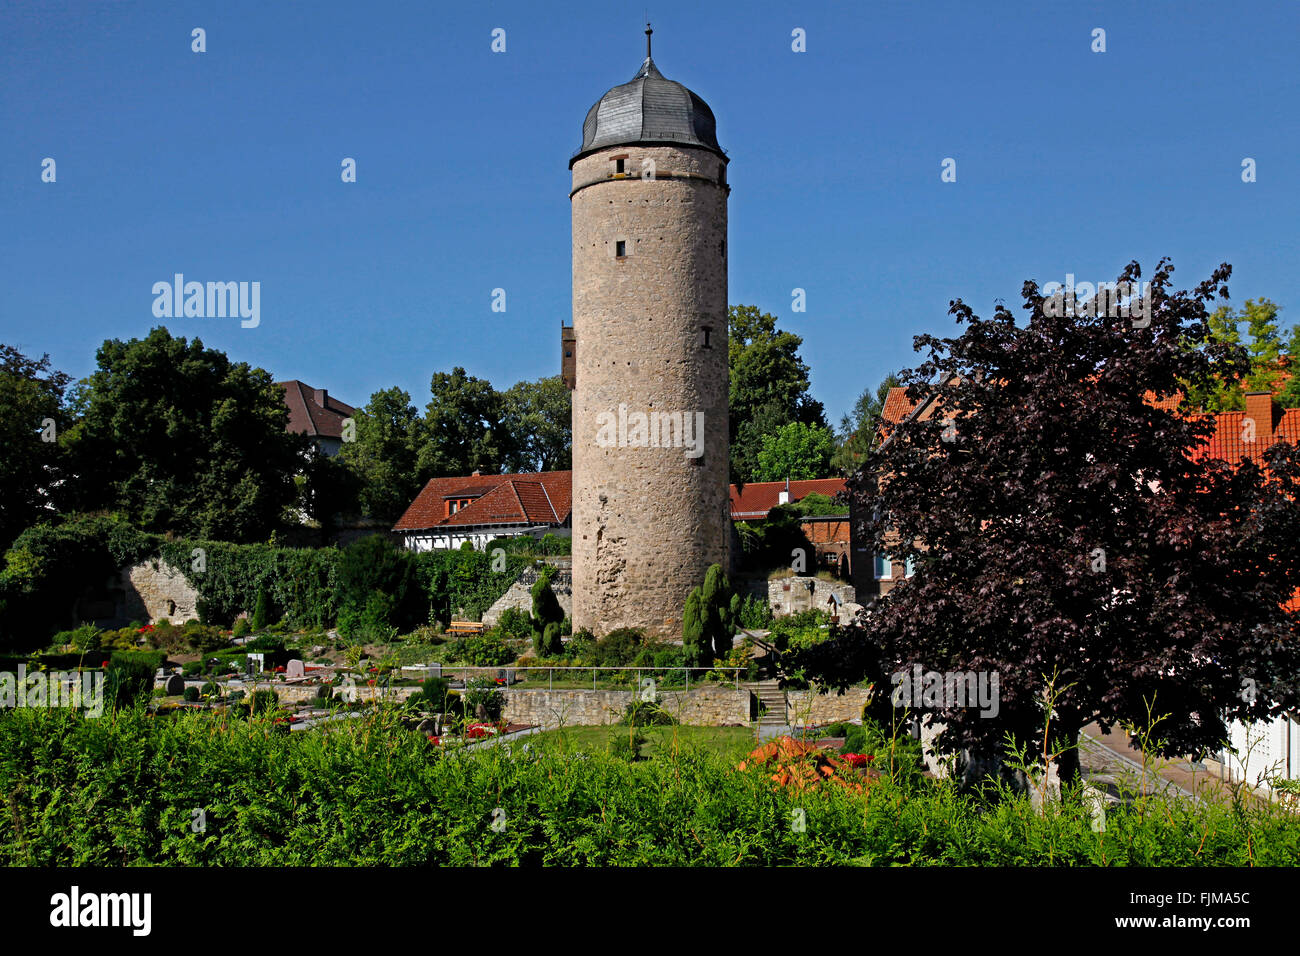 geography / travel, Germany, North Rhine-Westphalia, Warburg, buildings, Sackturm, built circa 1443, exterior view, - Stock Image